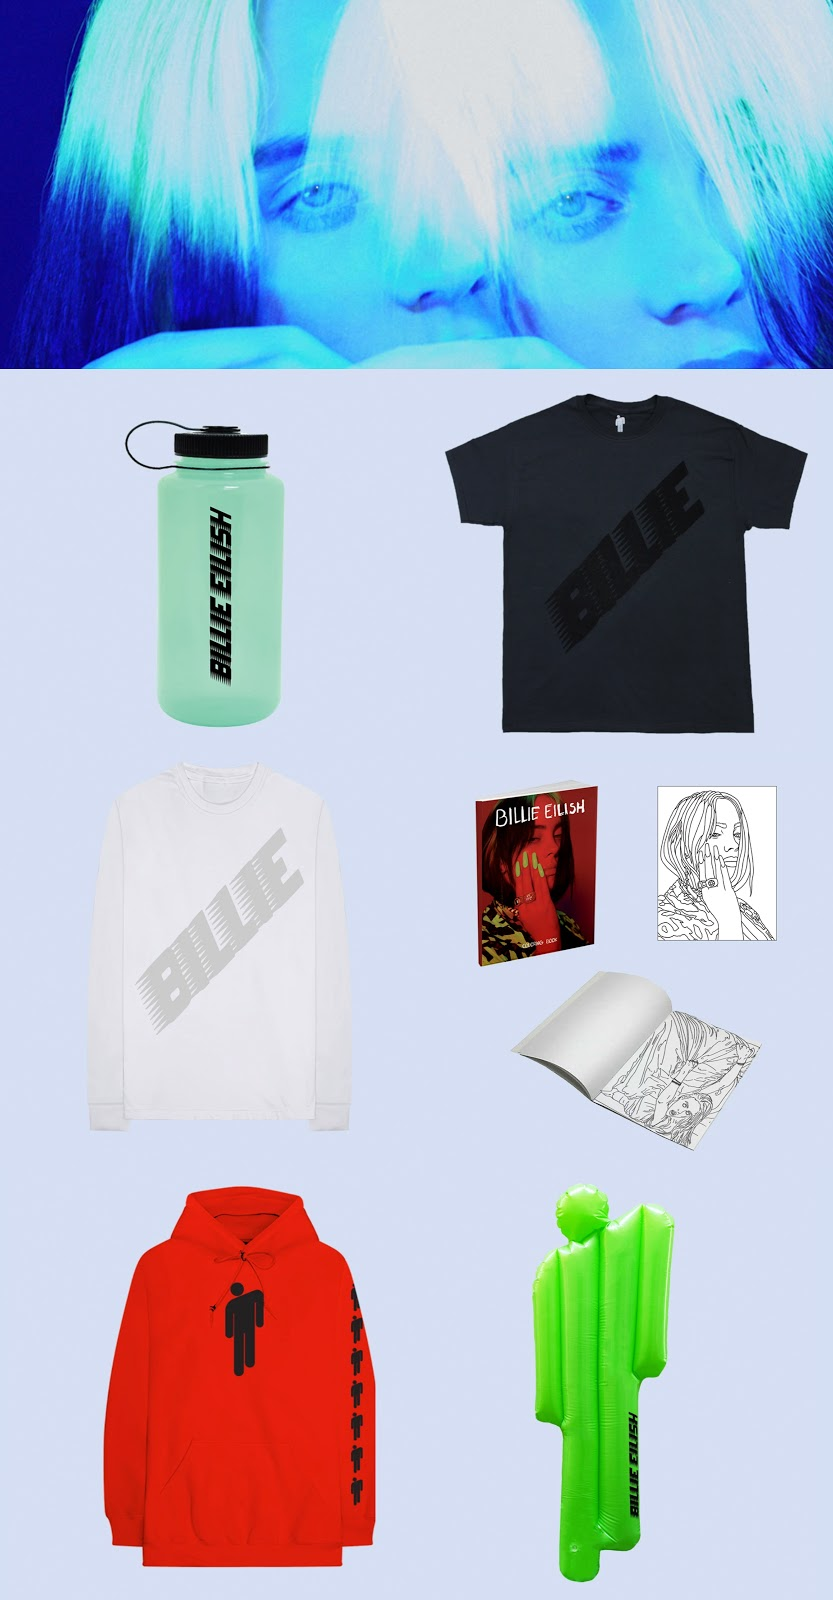 Gemnote_BandMerch_BillieEillish